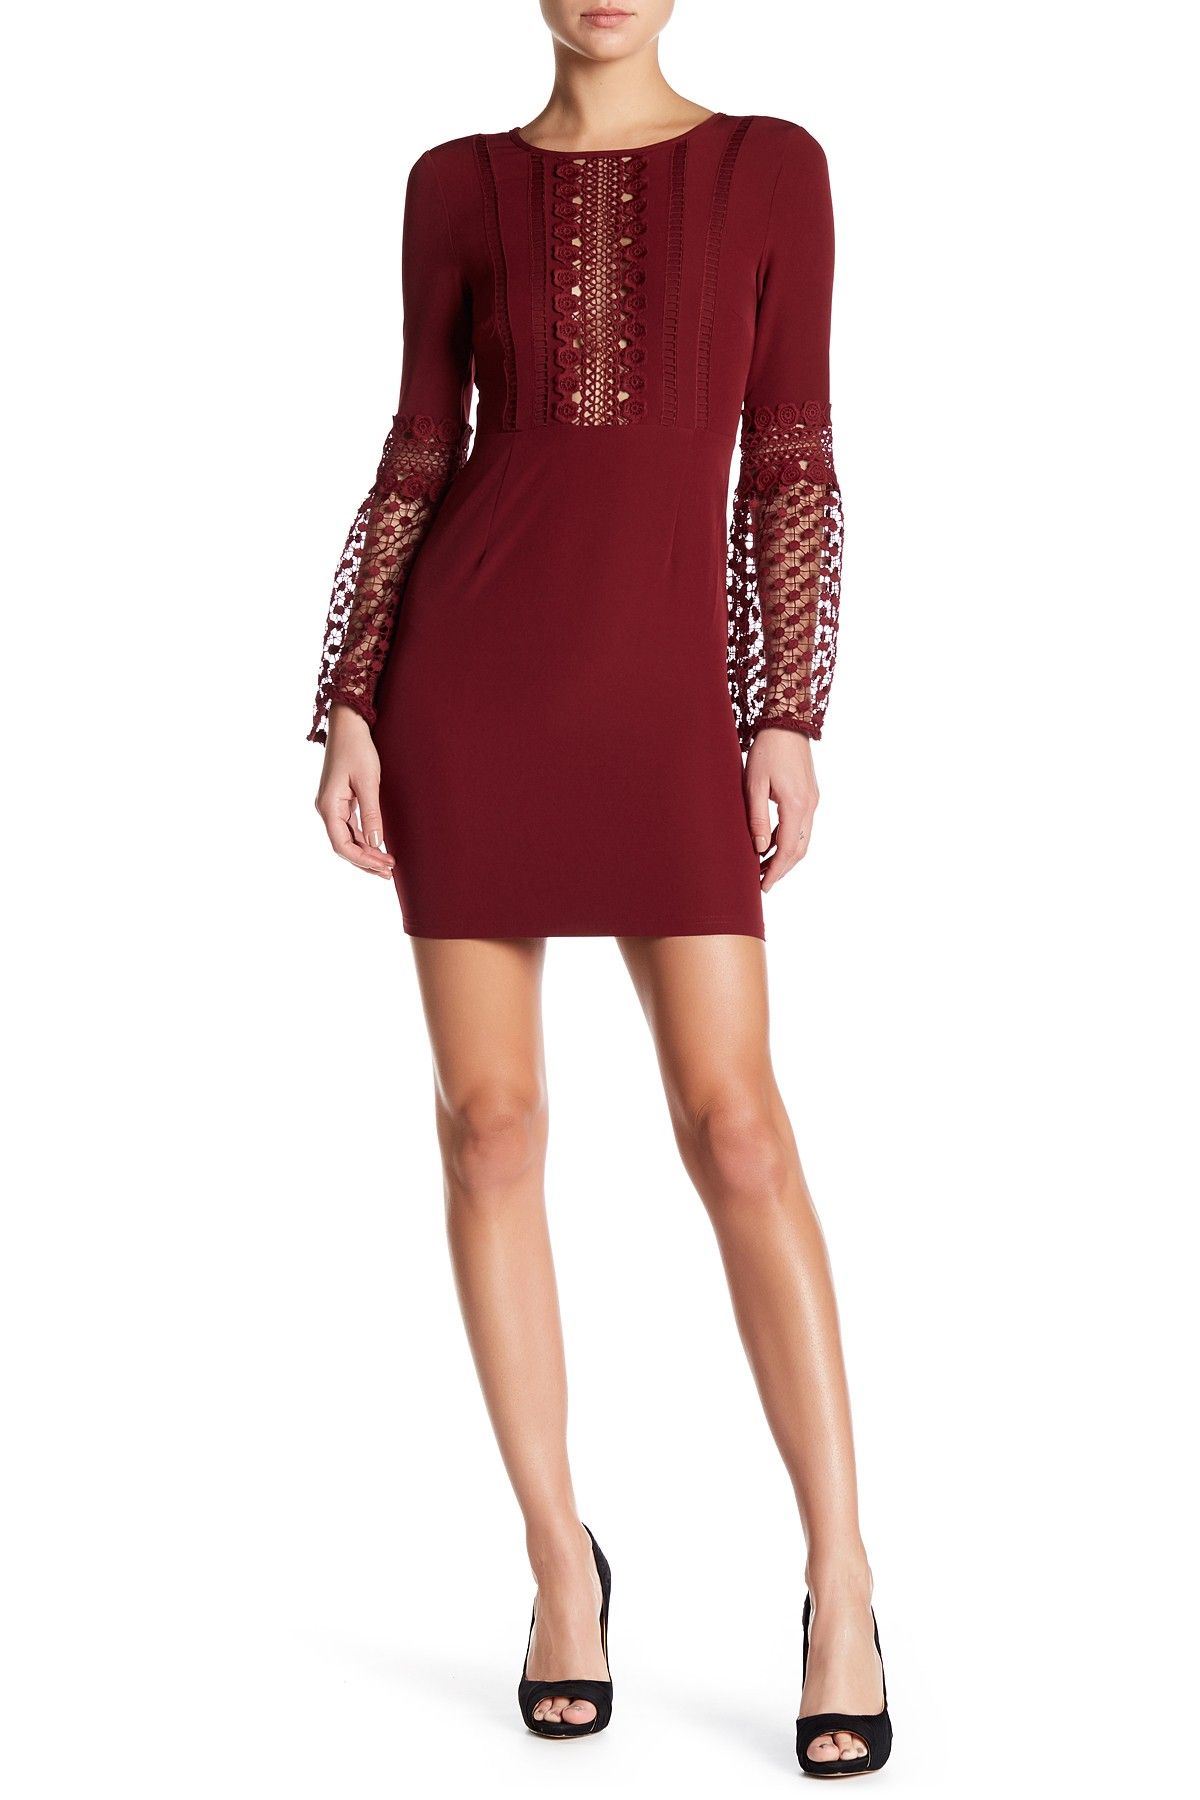 Romeo u juliet couture bell sleeve woven dress free shipping and